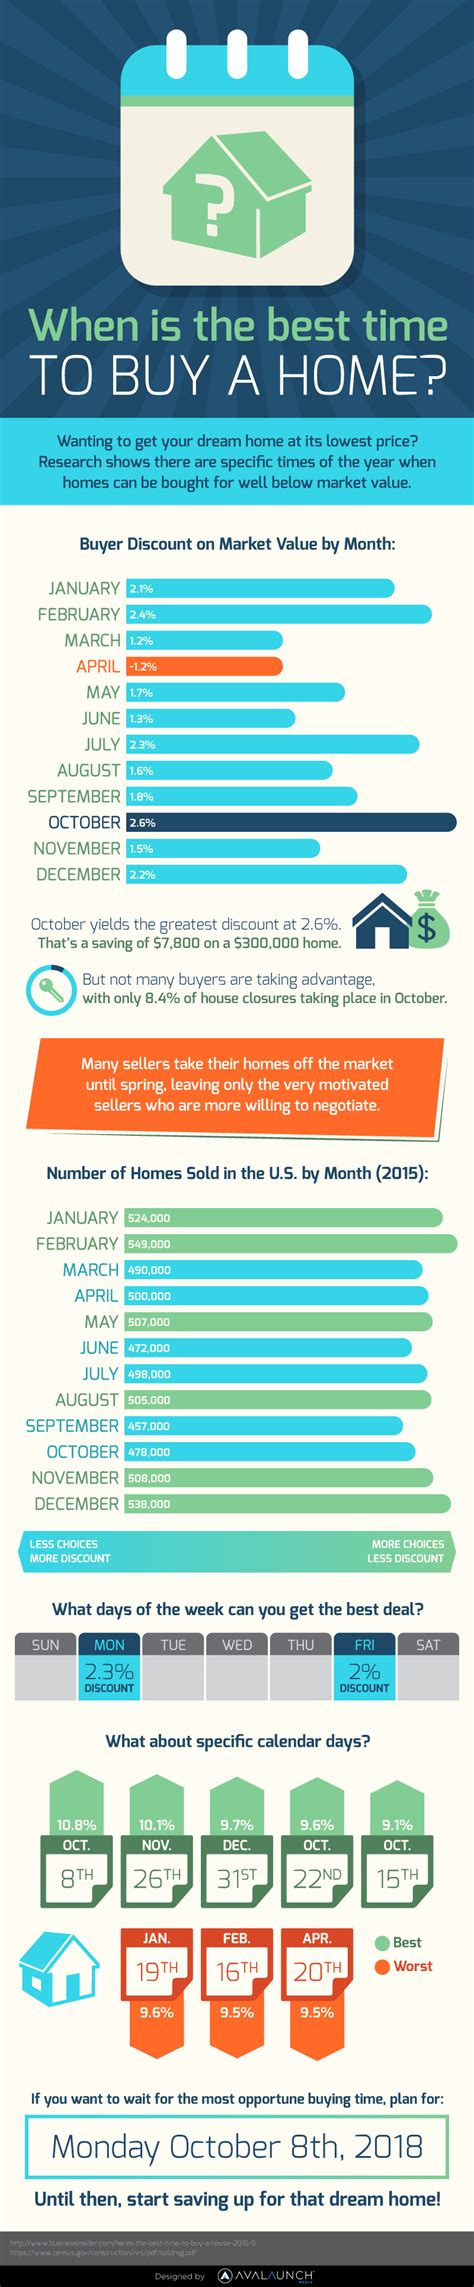 best time to buy when is the best time to buy a home